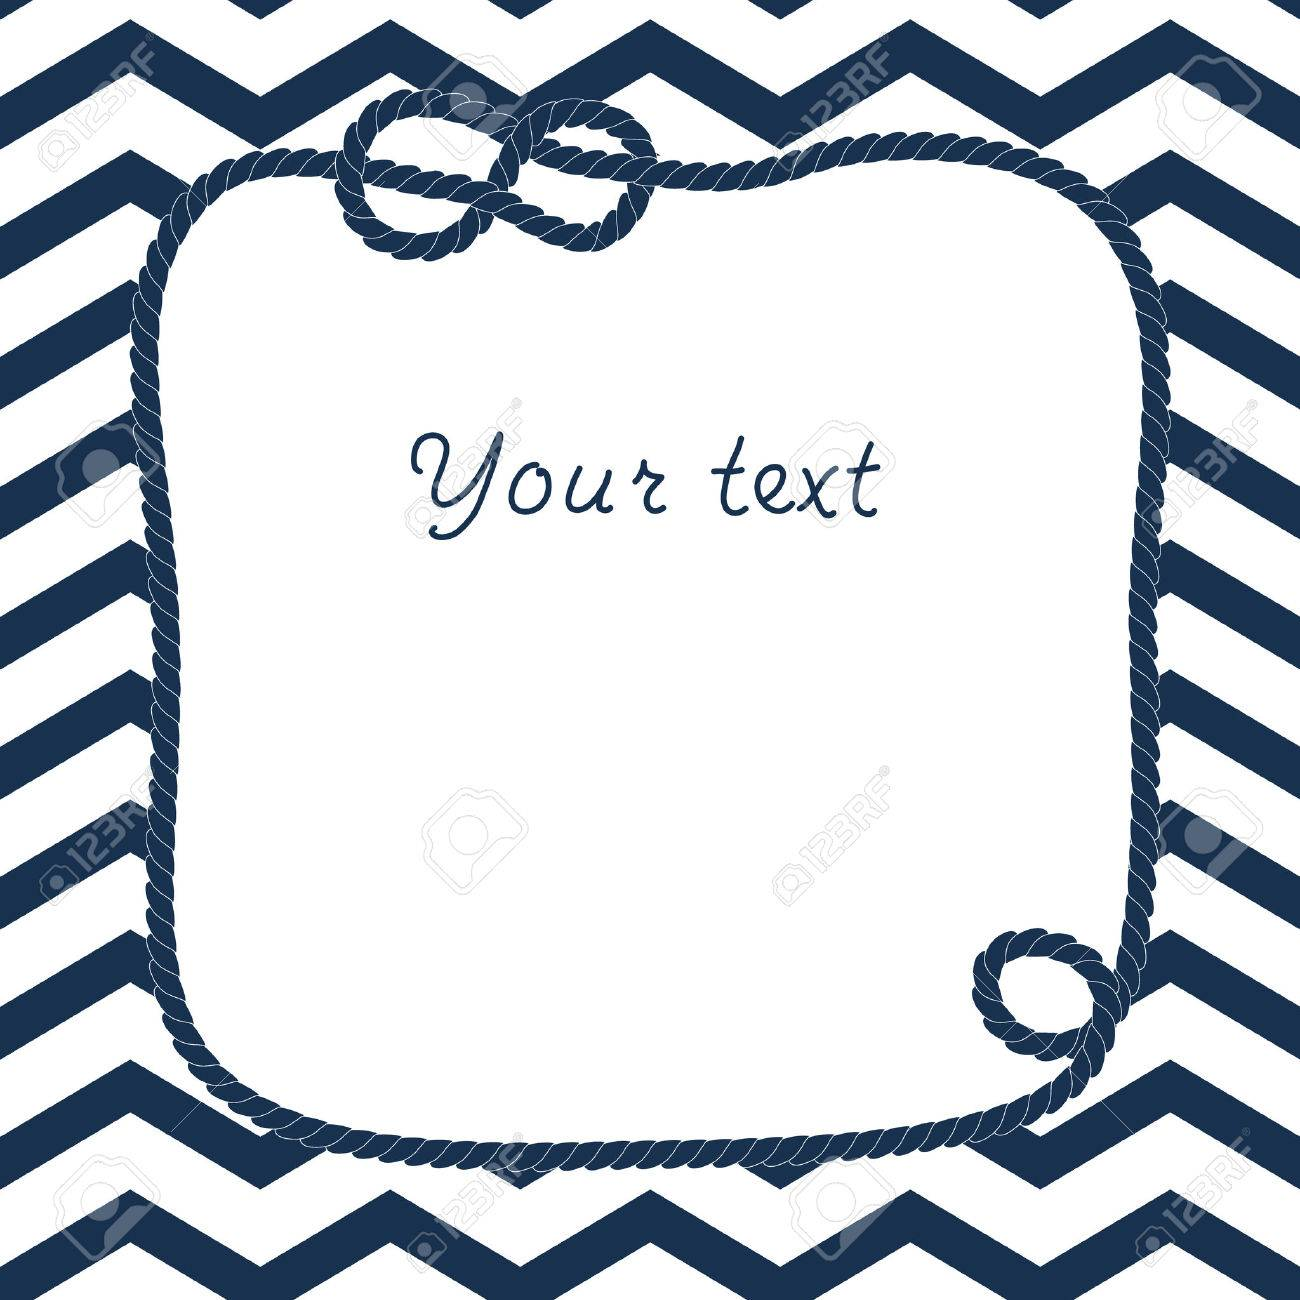 navy blue and white rope with marine knot frame for your text on chevron background